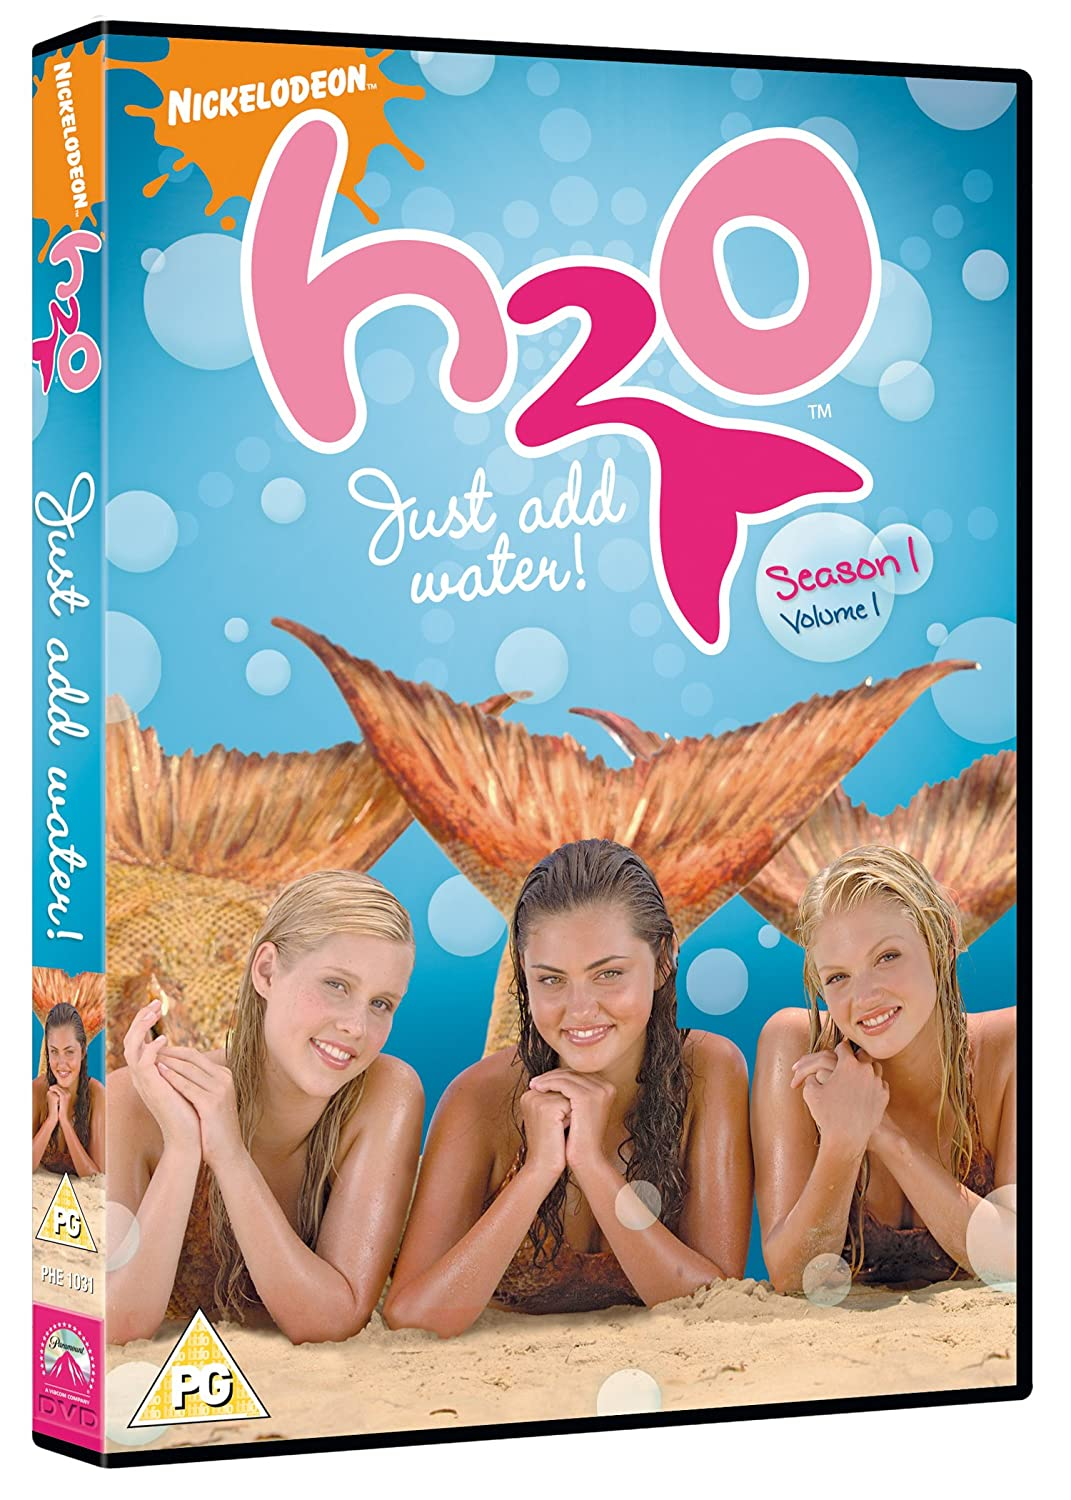 h2o just add water season 1 volume 1 dvd amazon co uk